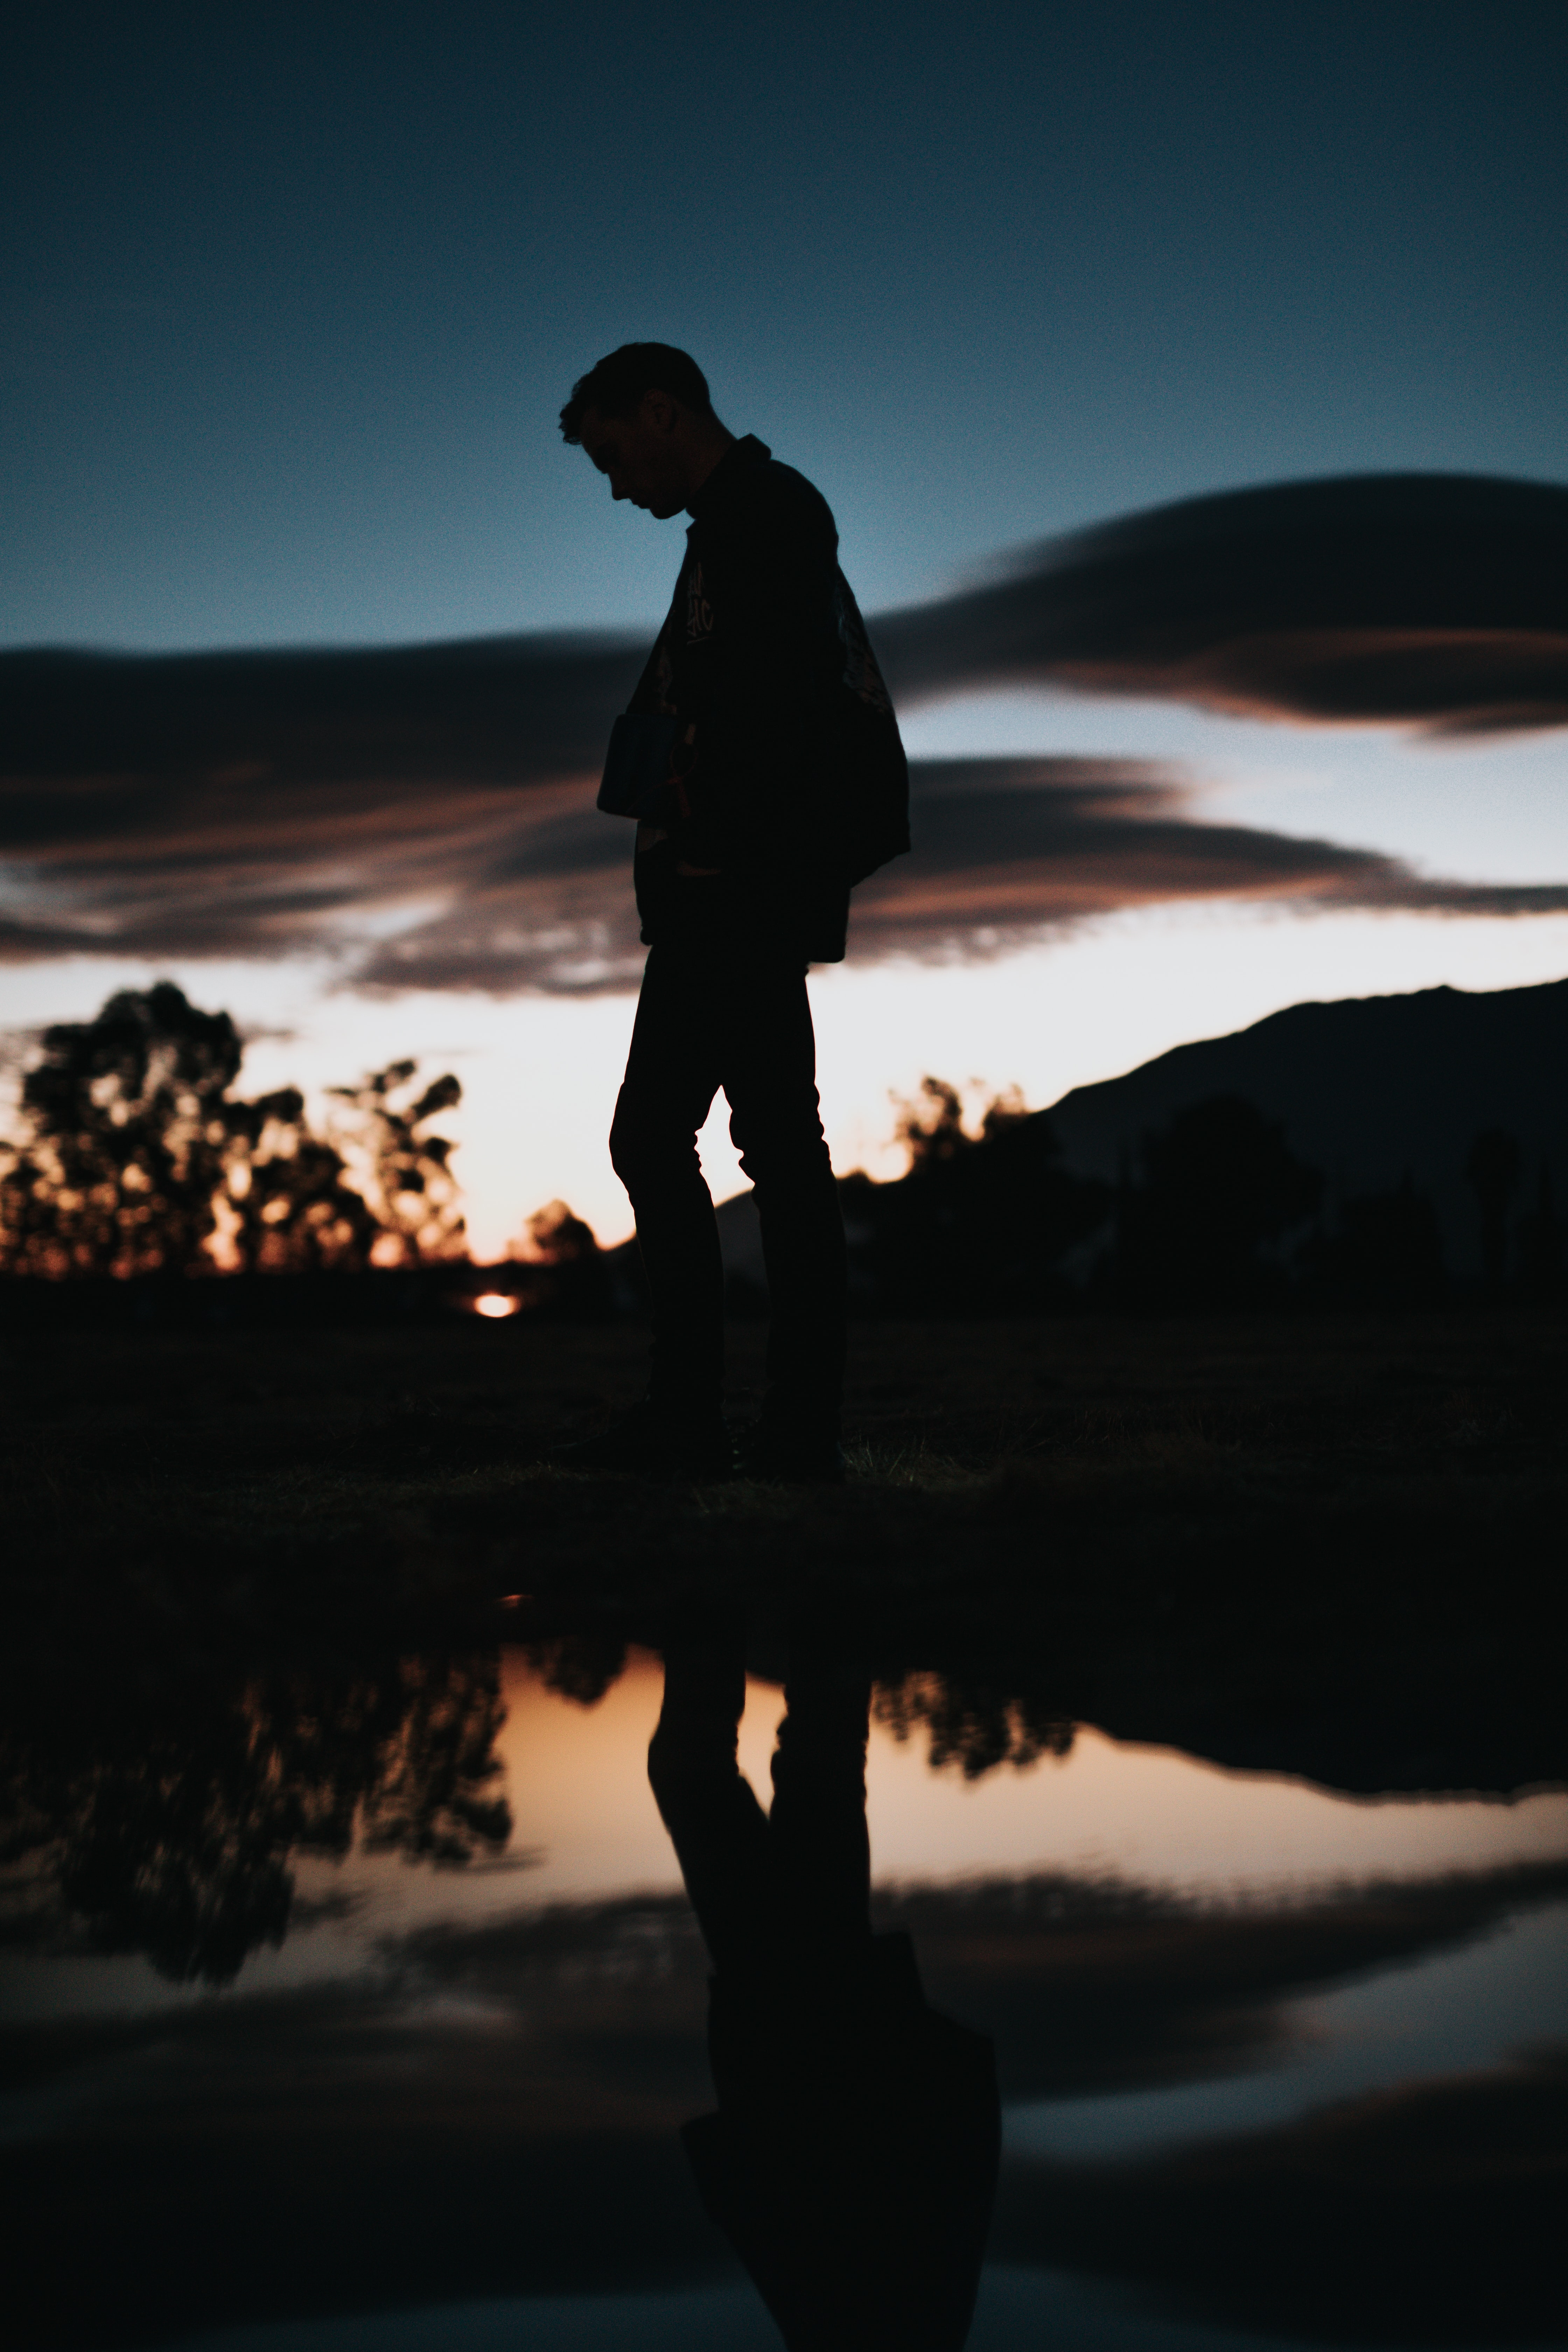 silhouette of man near body of water